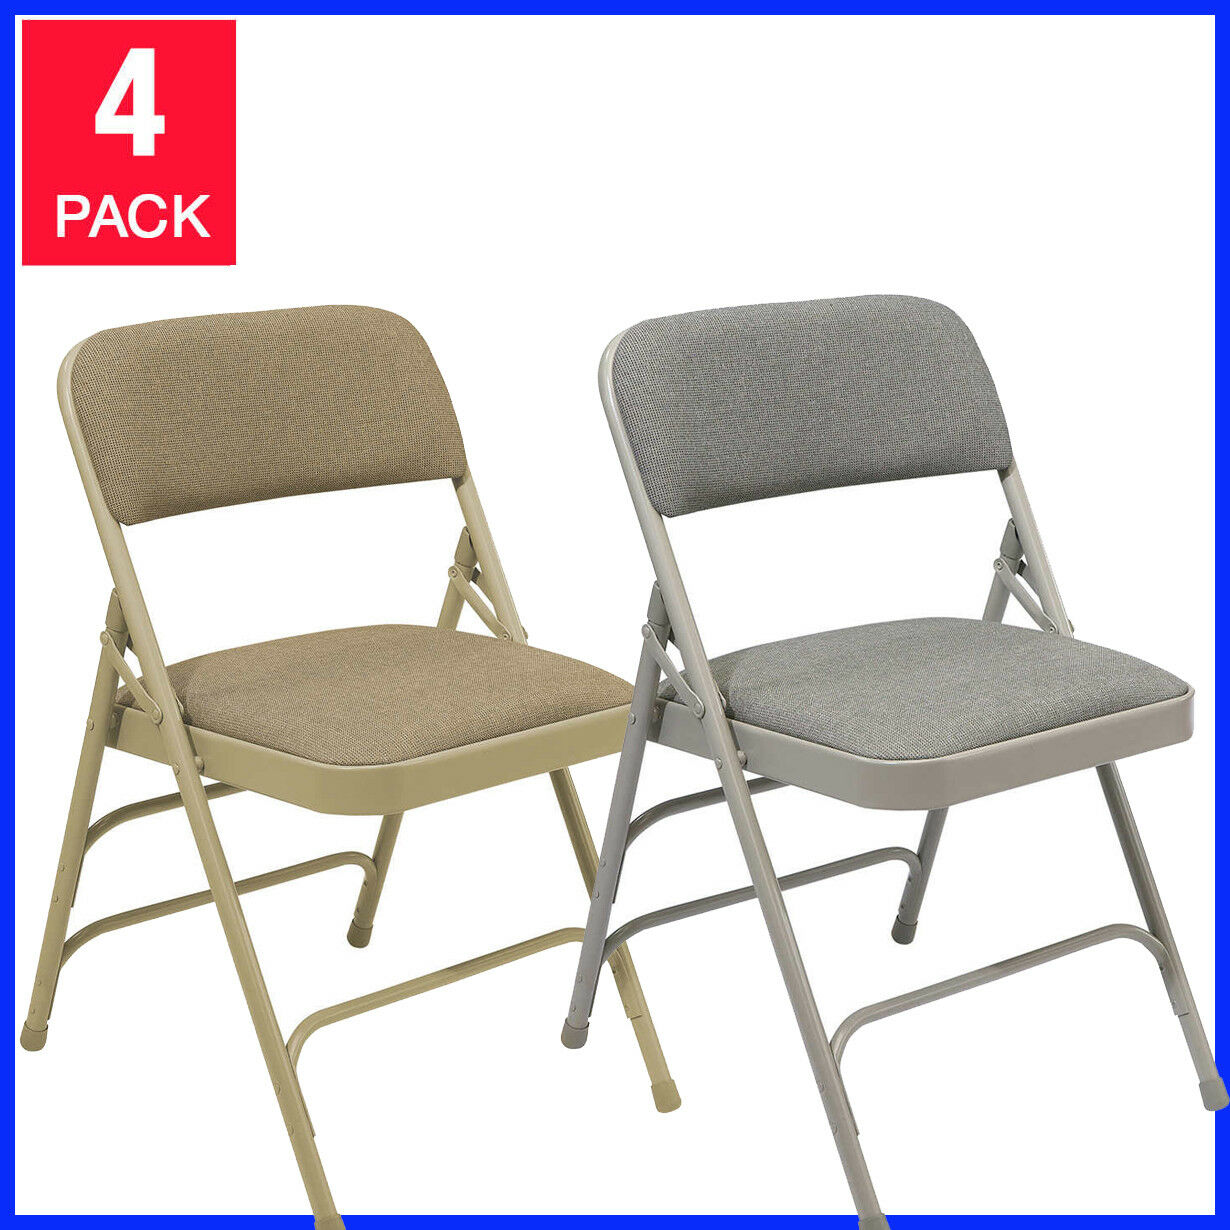 4 Pack, National Public Seating Upholstered Folding Chair,